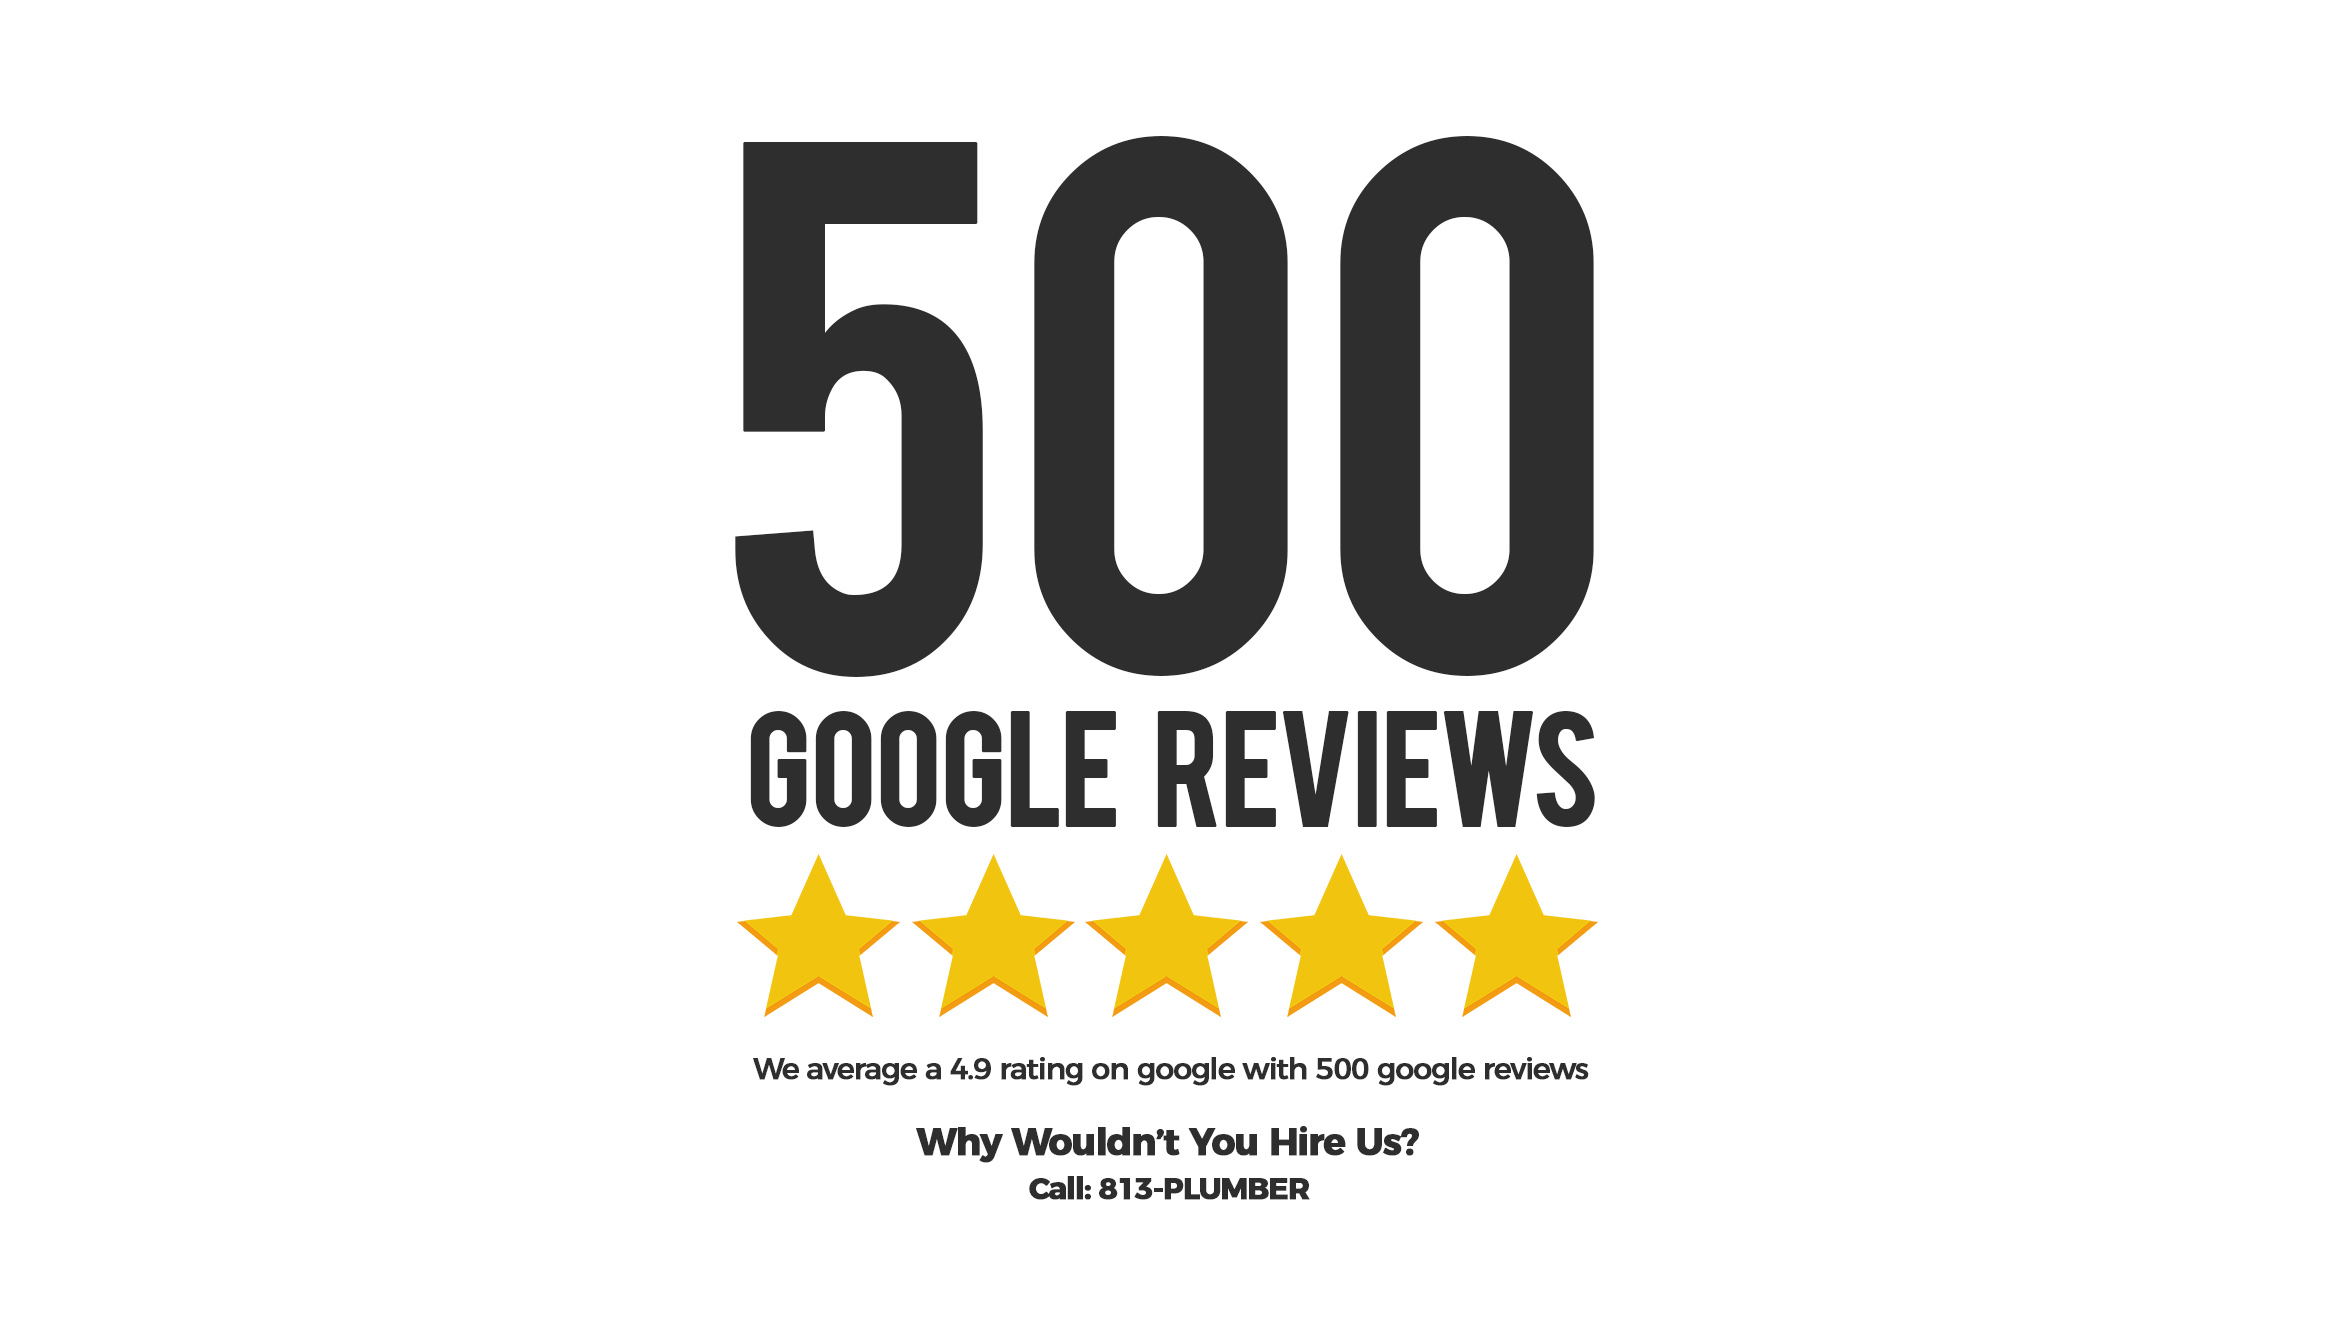 Tampa's Best Plumbing Company Just Hit 500 Google Reviews!